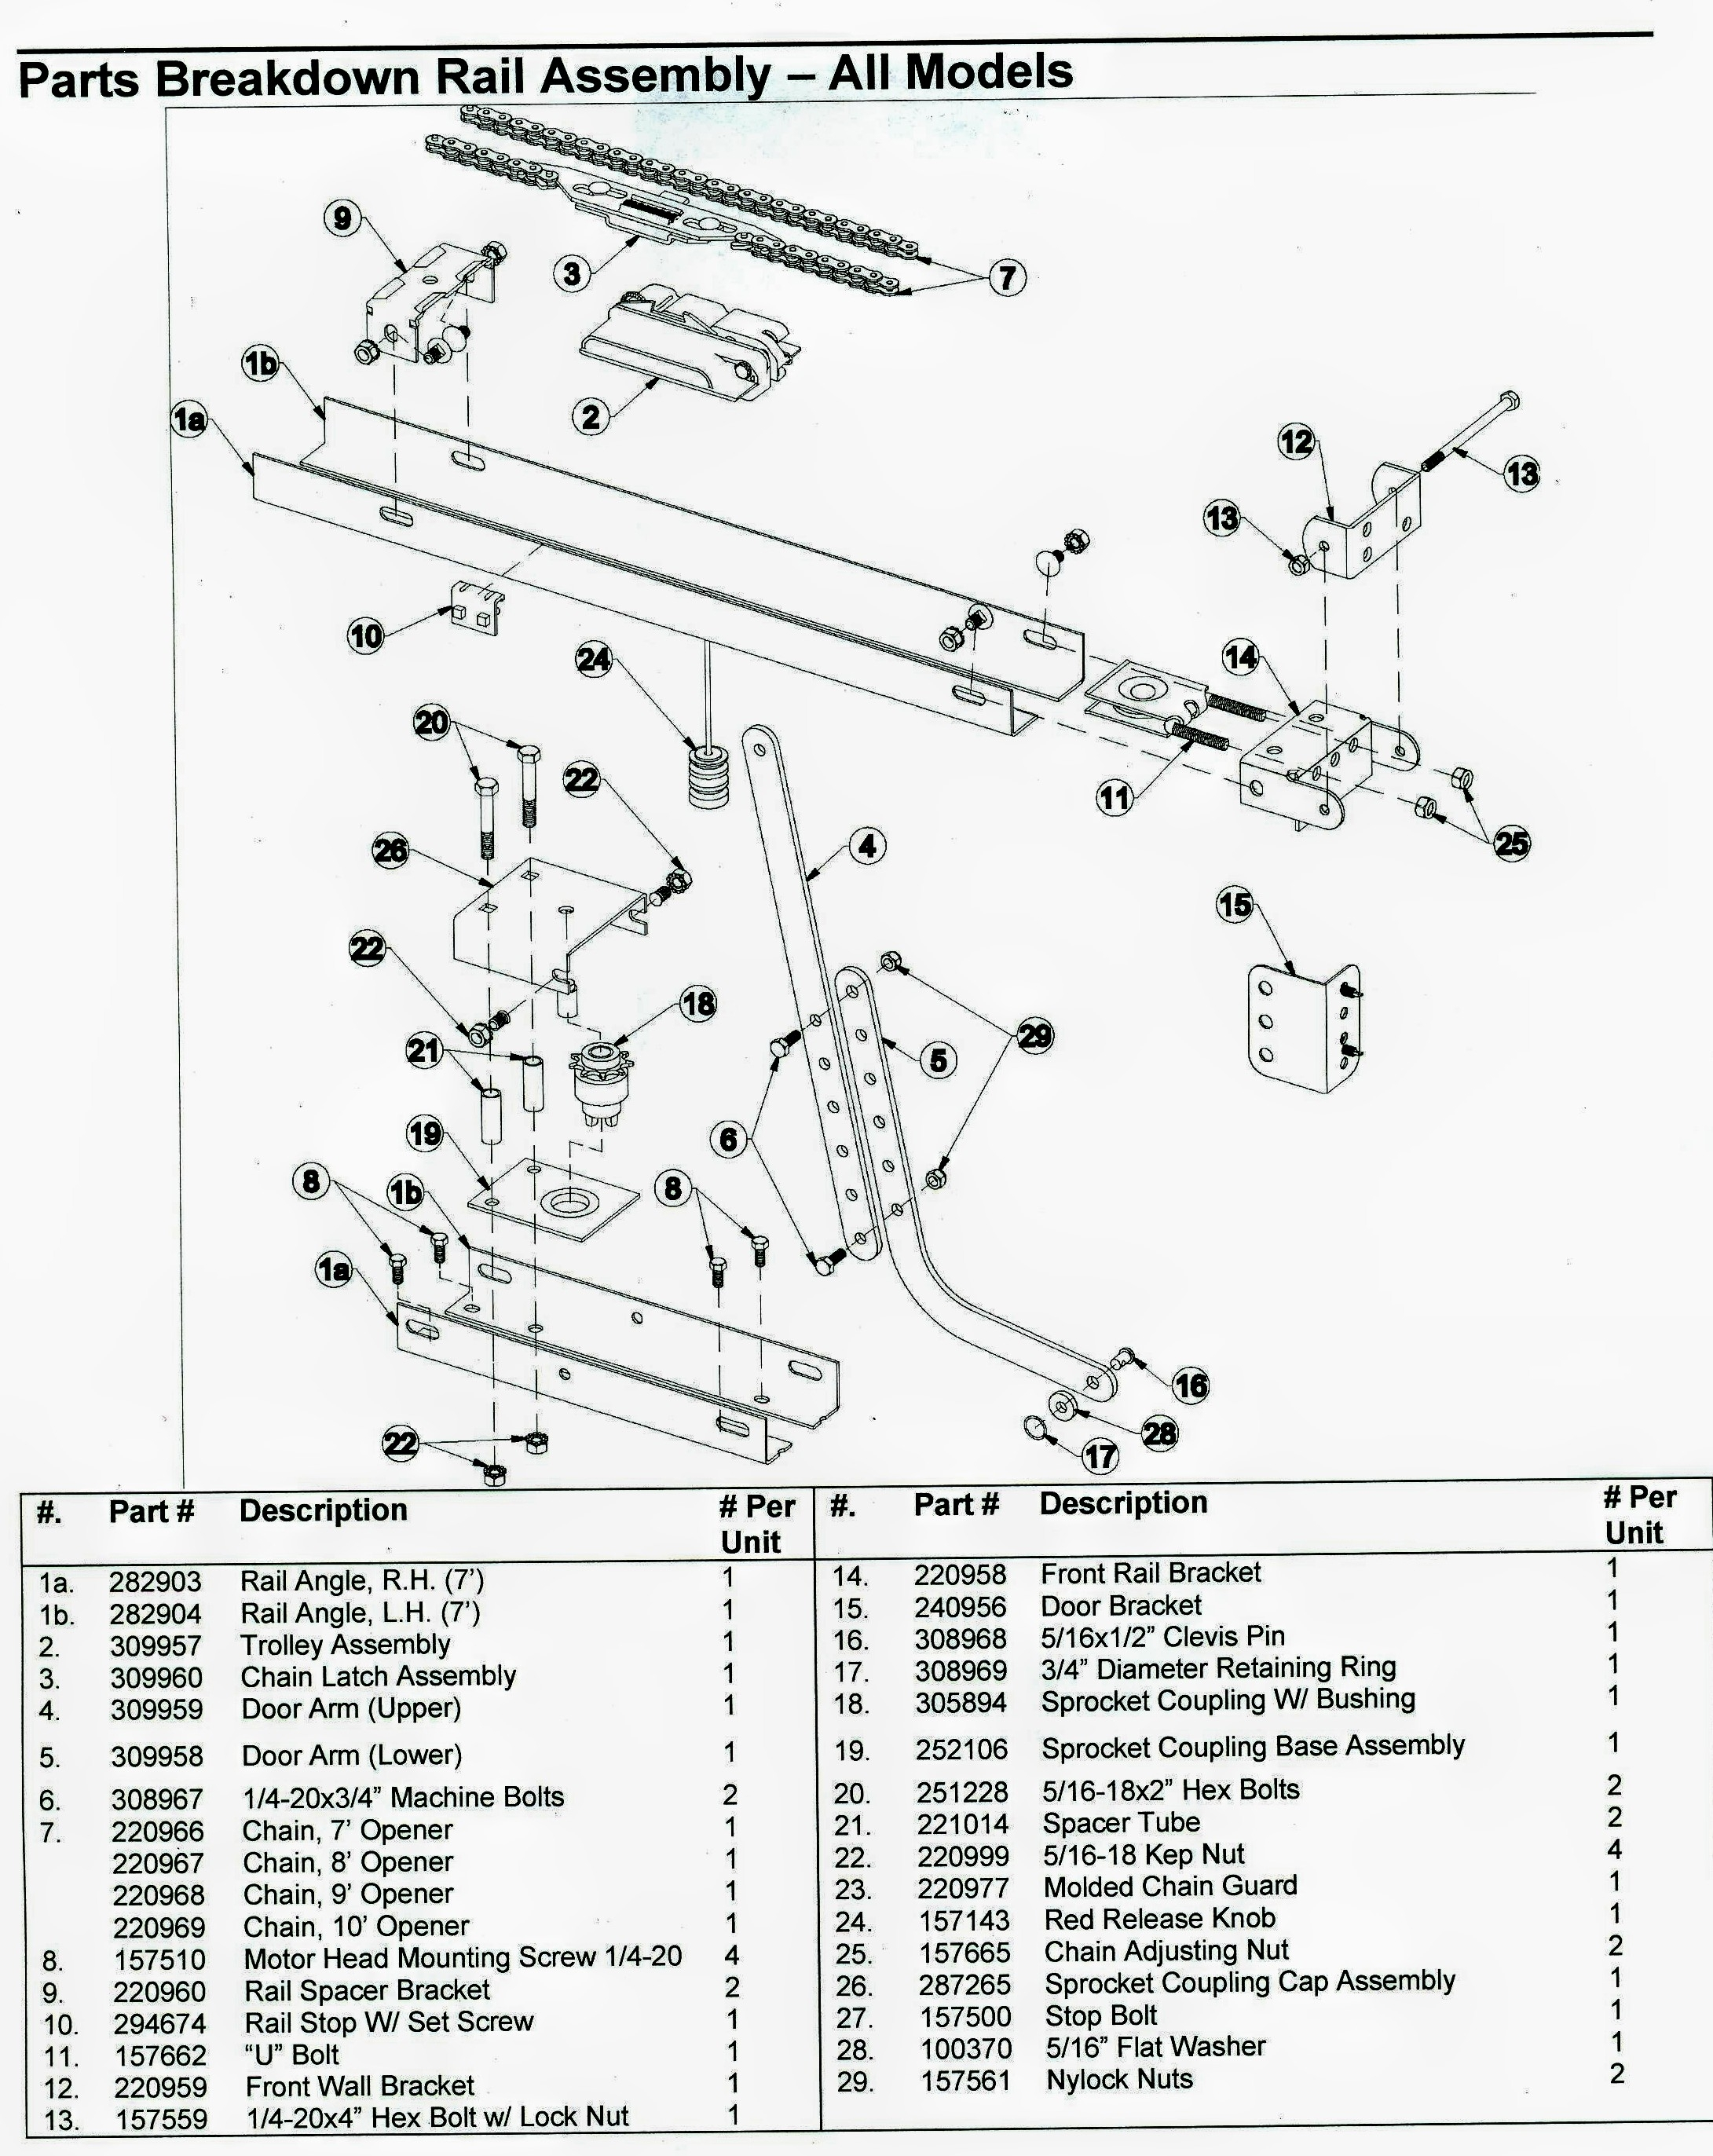 wiring diagram for liftmaster garage door opener on free throughout chamberlain garage door opener parts diagram wiring diagram for liftmaster garage door opener on free garage wiring diagram at edmiracle.co